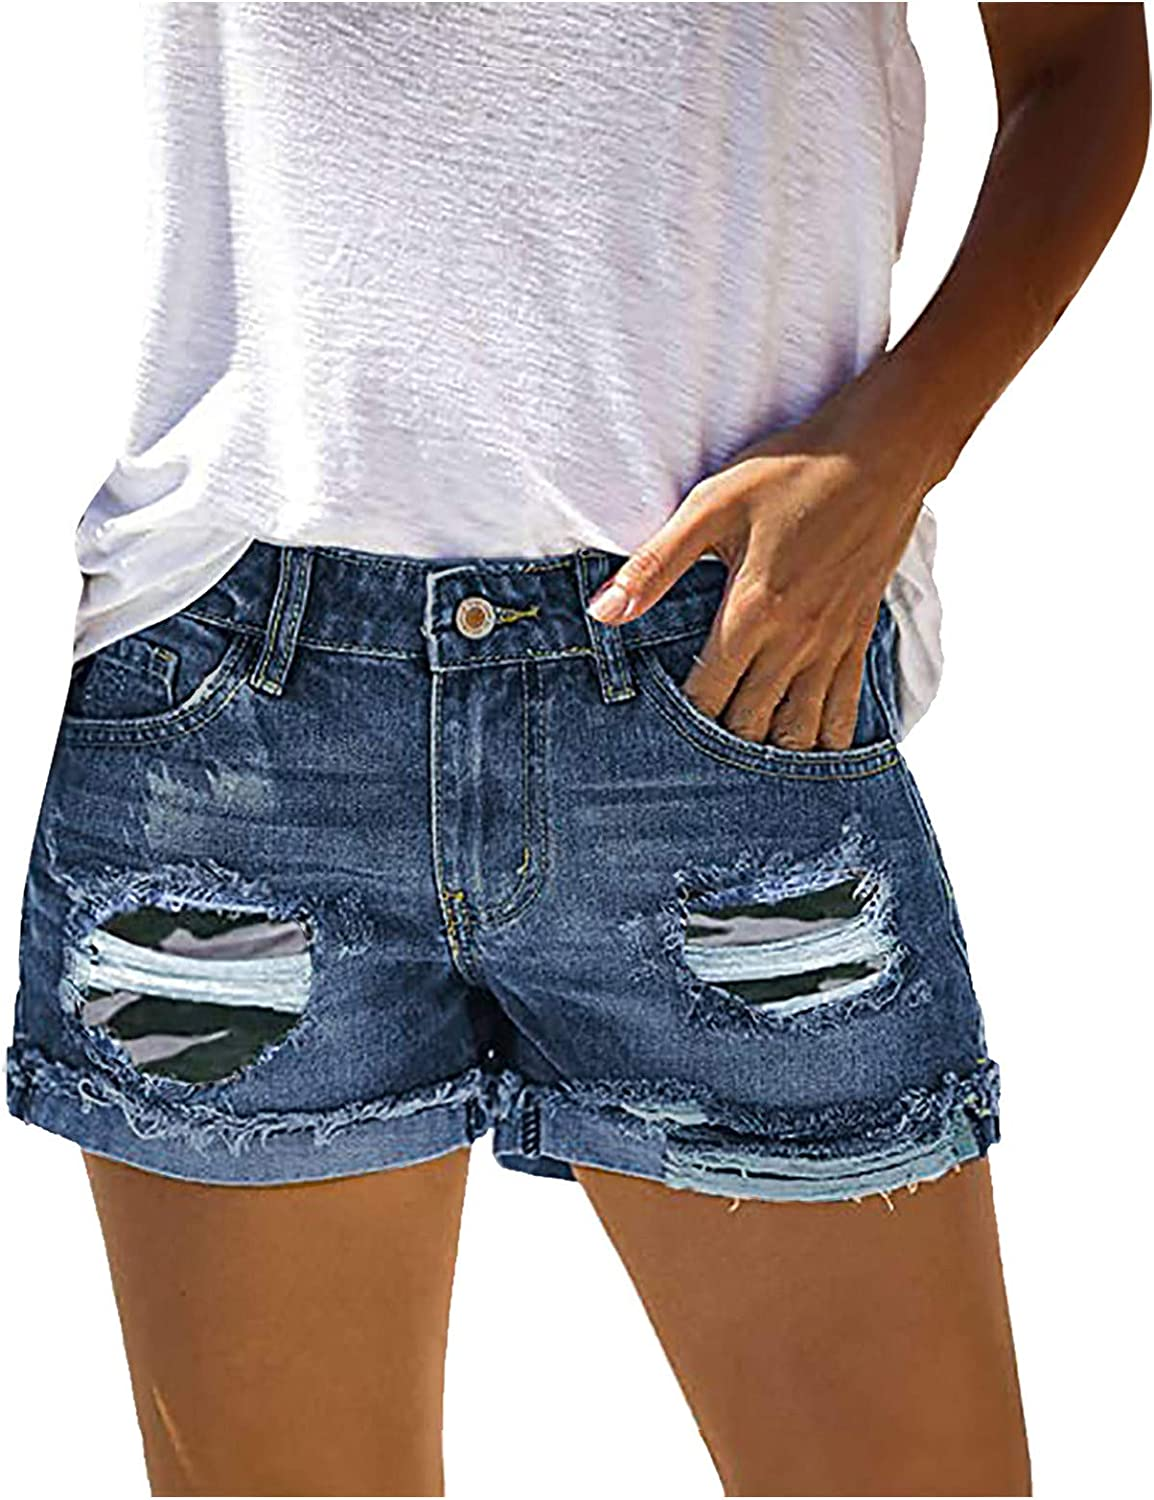 Denim Shorts for Women,Shorts for Women Distressed Ripped Stretchy Frayed Raw Hem Hot Short Jeans